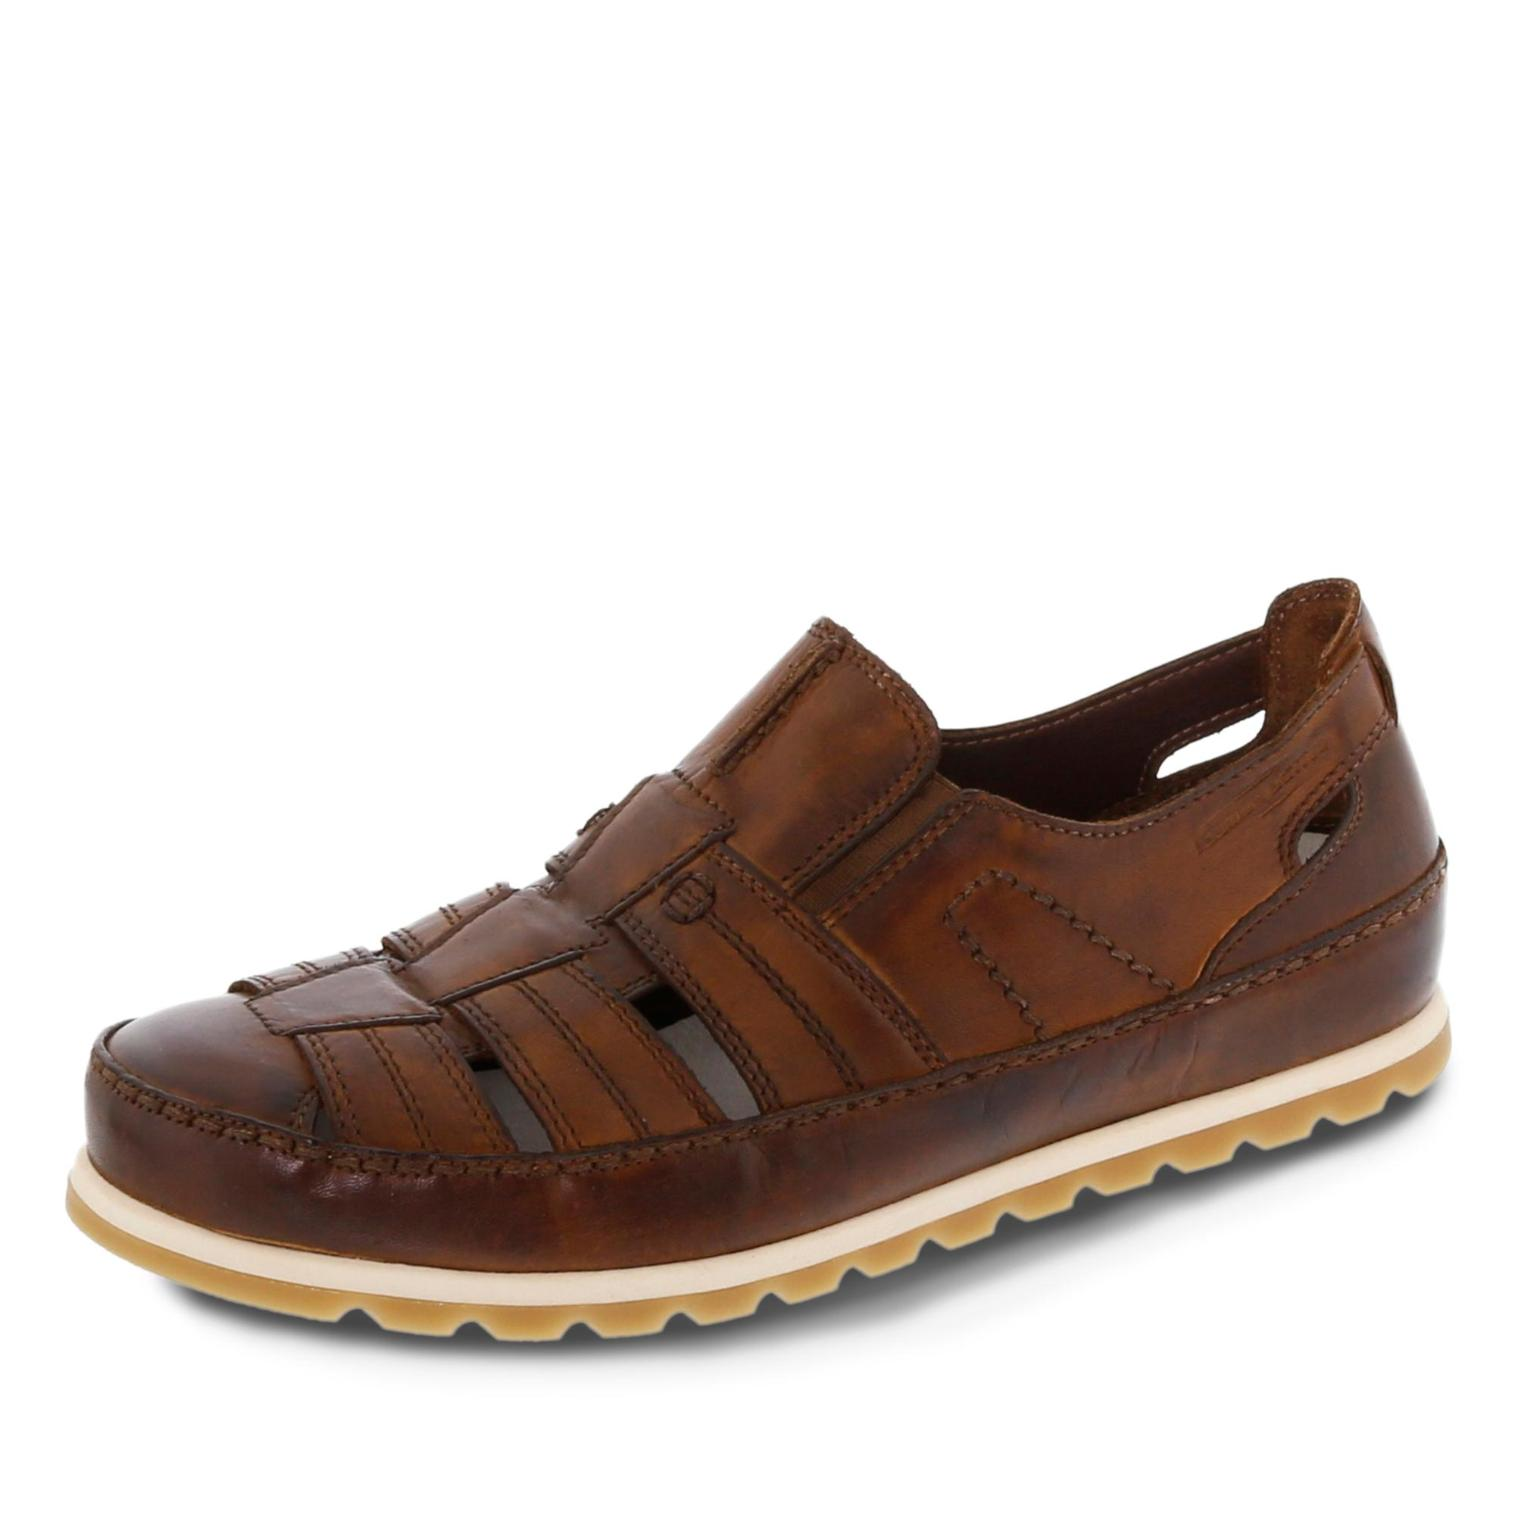 Camel Active Sandale in Farbe cognac